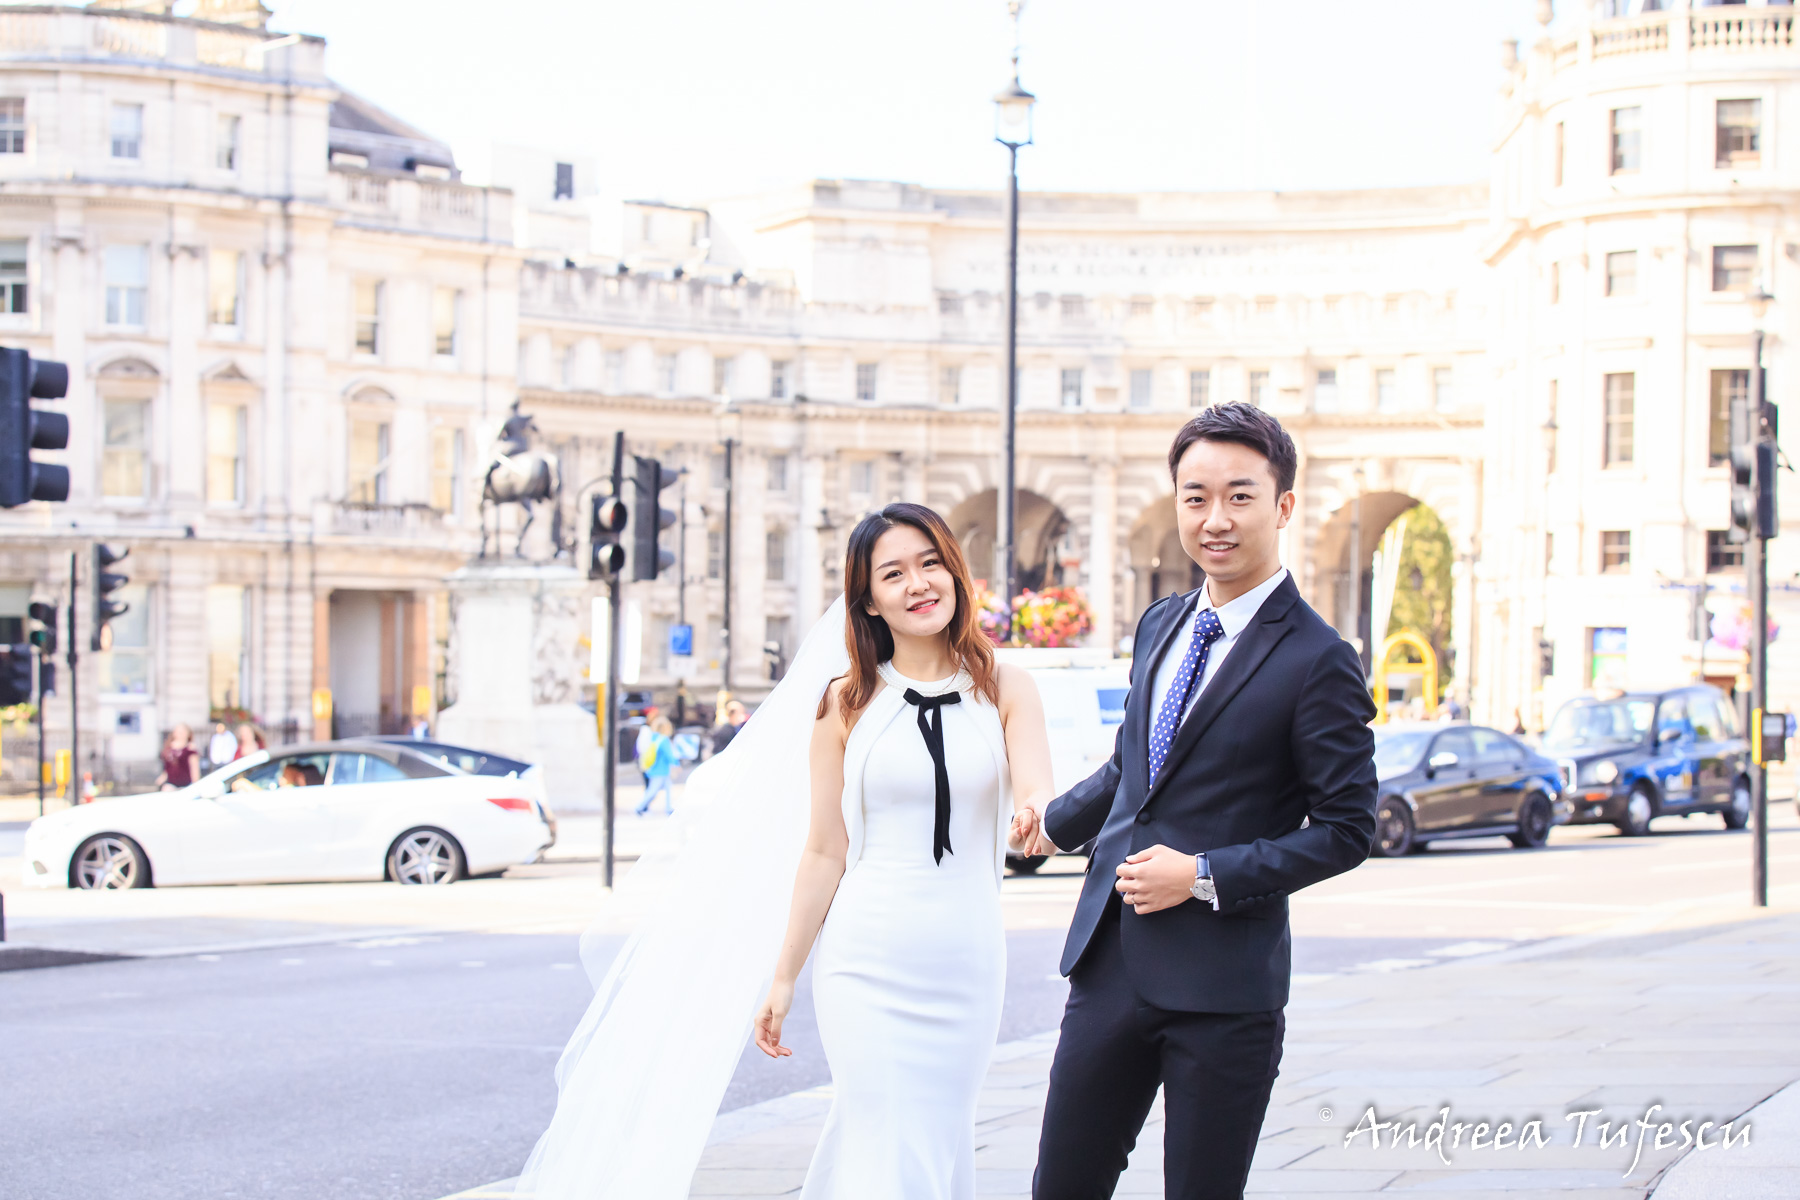 PreWedding Photoshoot Central London Trafalgar Square C & E